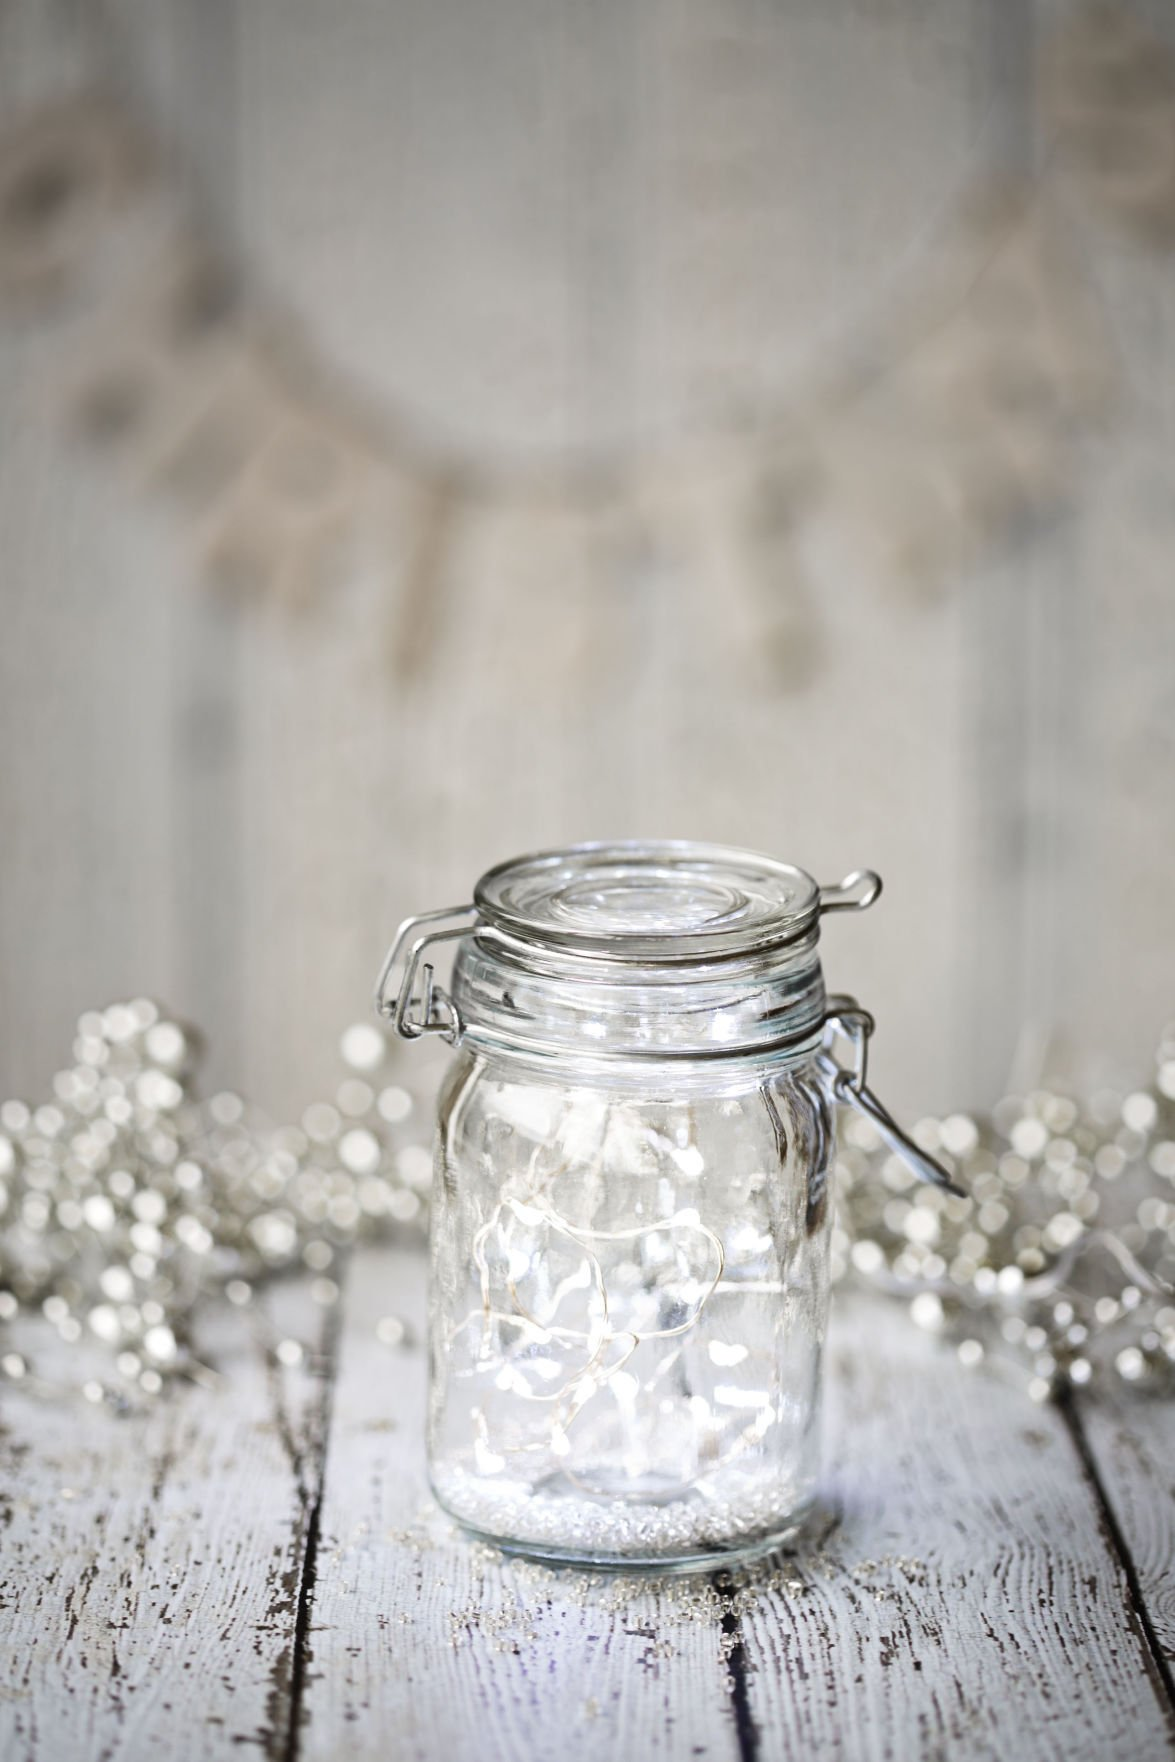 Use your glass containers to make stunning holiday décor | Home and ...